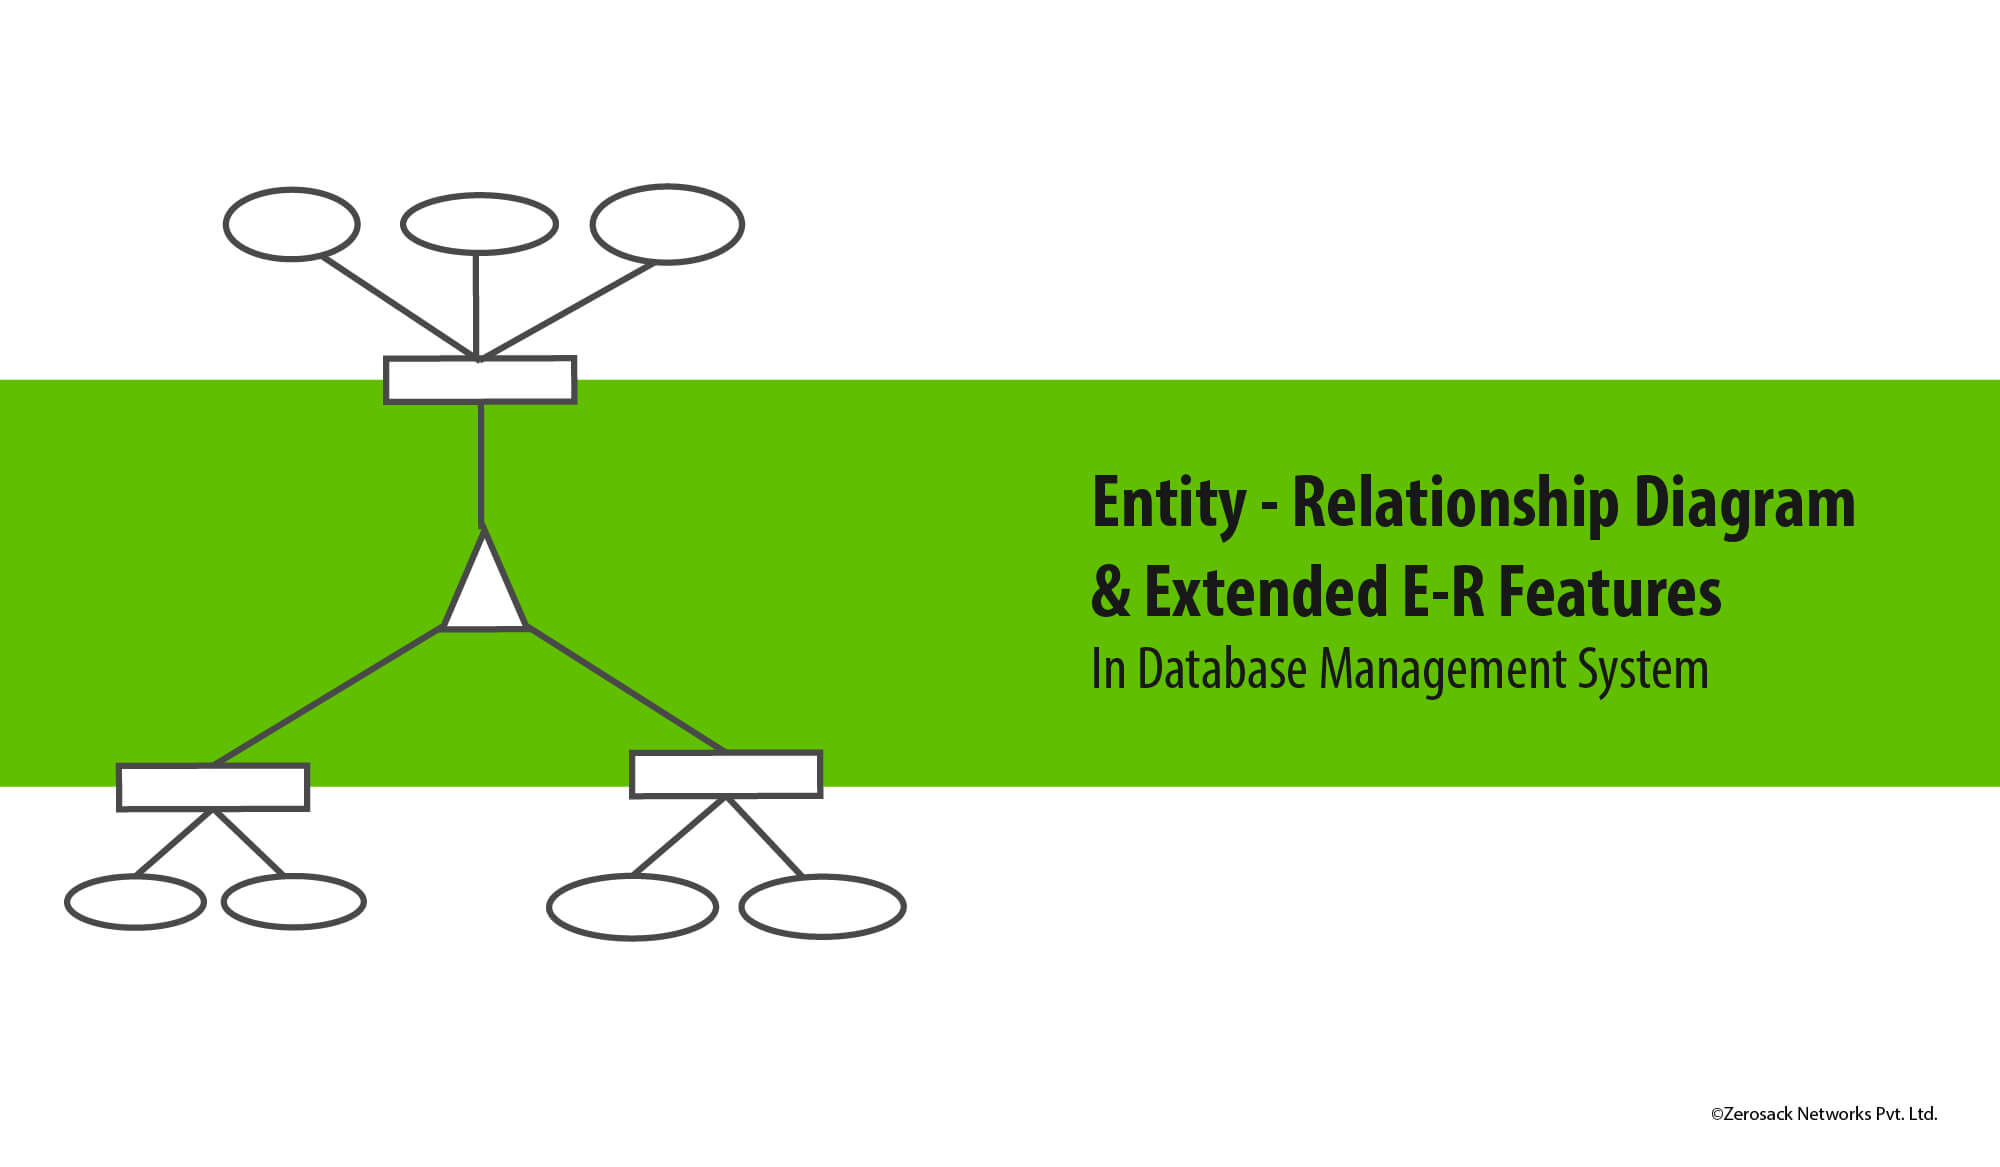 E-R Model Diagram And Extended E-R Feature In Dbms intended for Er Model Diagram In Dbms